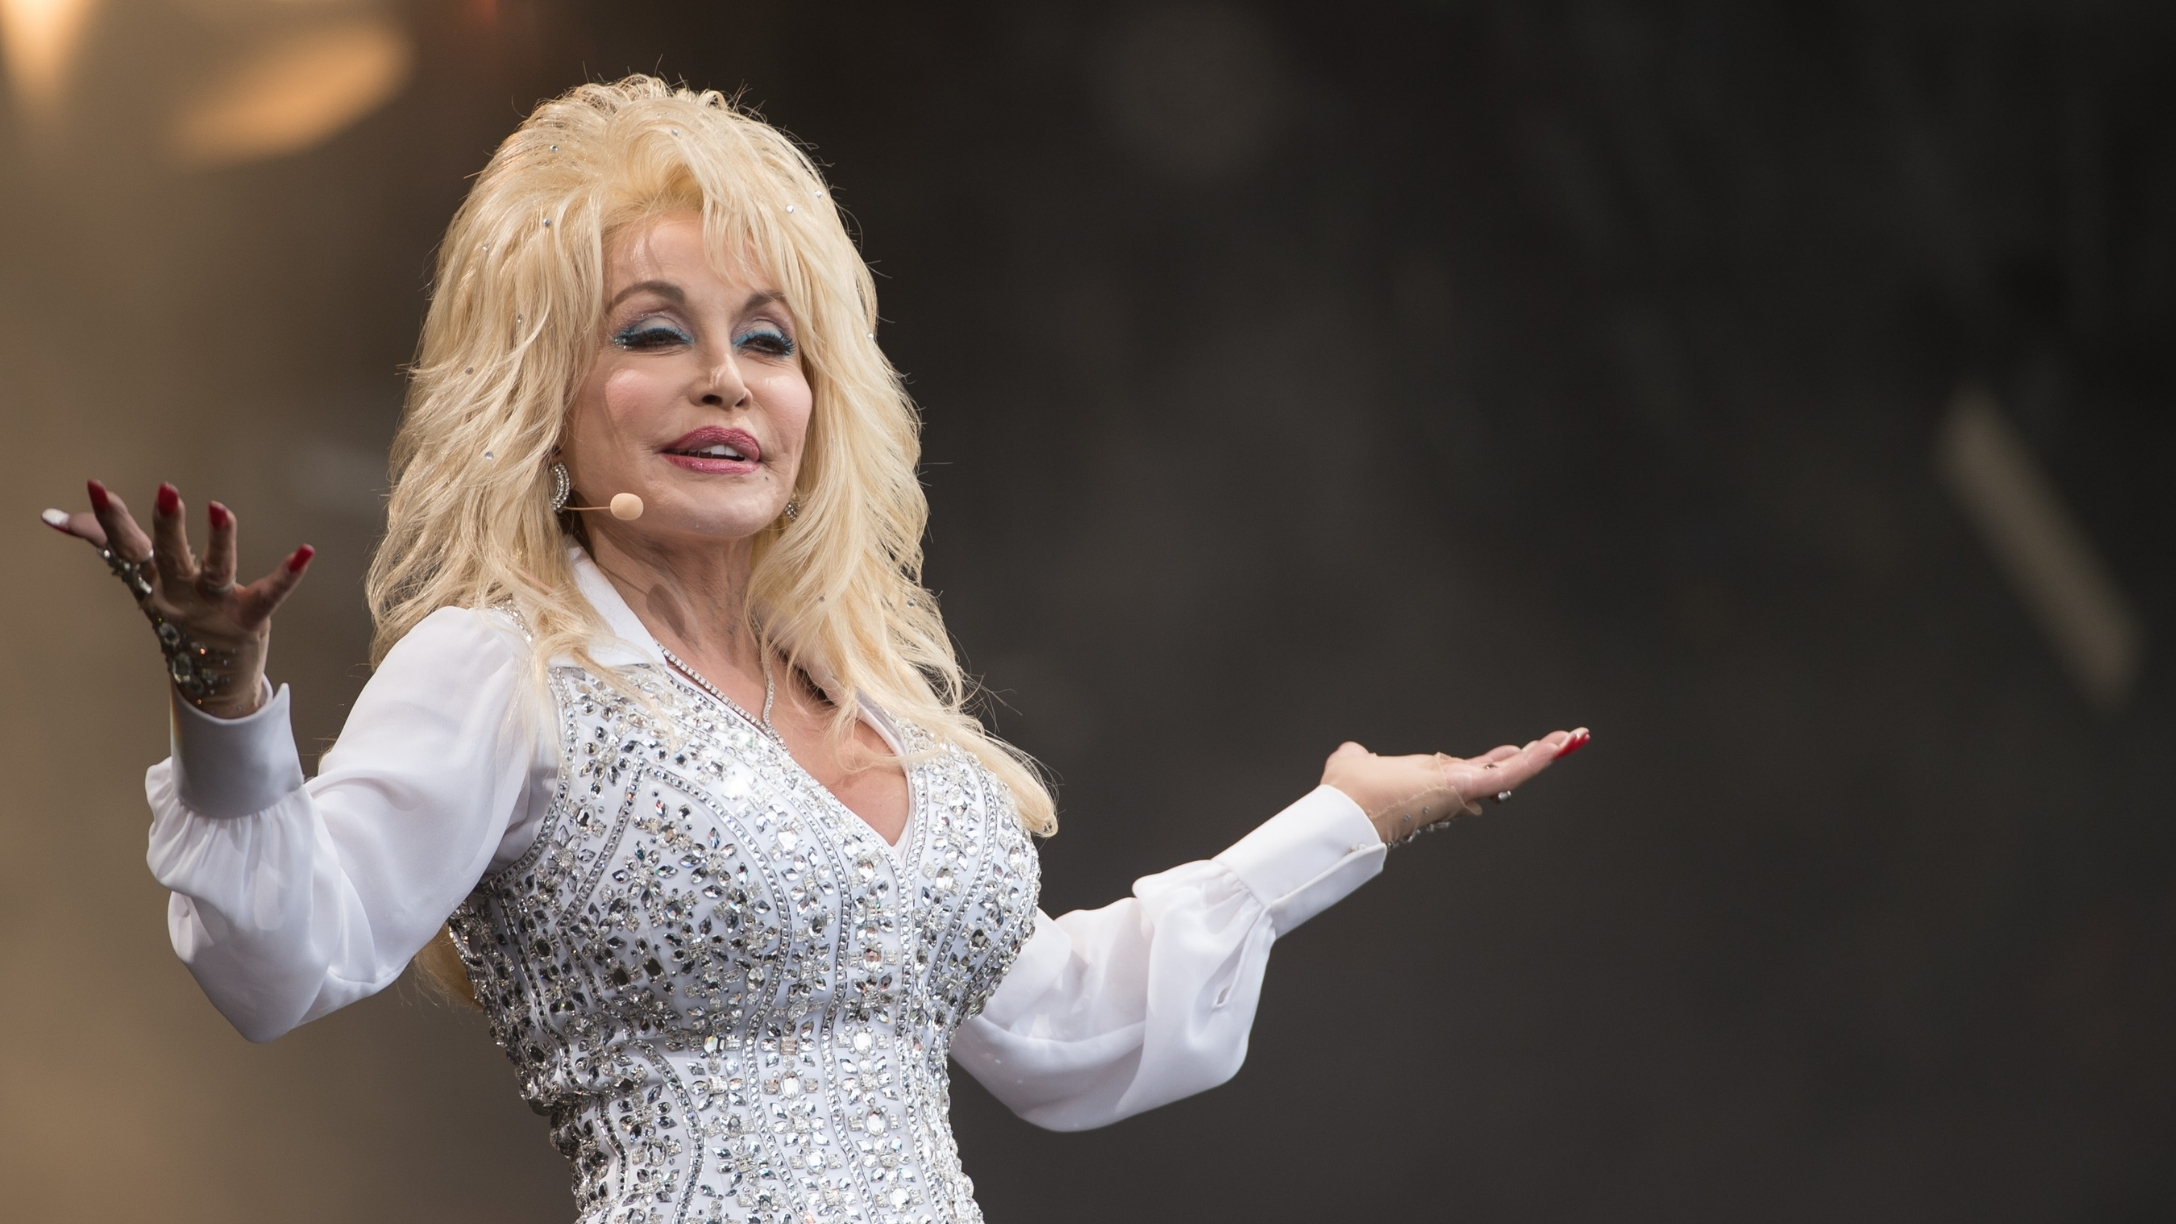 Dolly Parton Is Stunning As Ever As She Recreates 'Playboy' Cover For Husband's Birthday